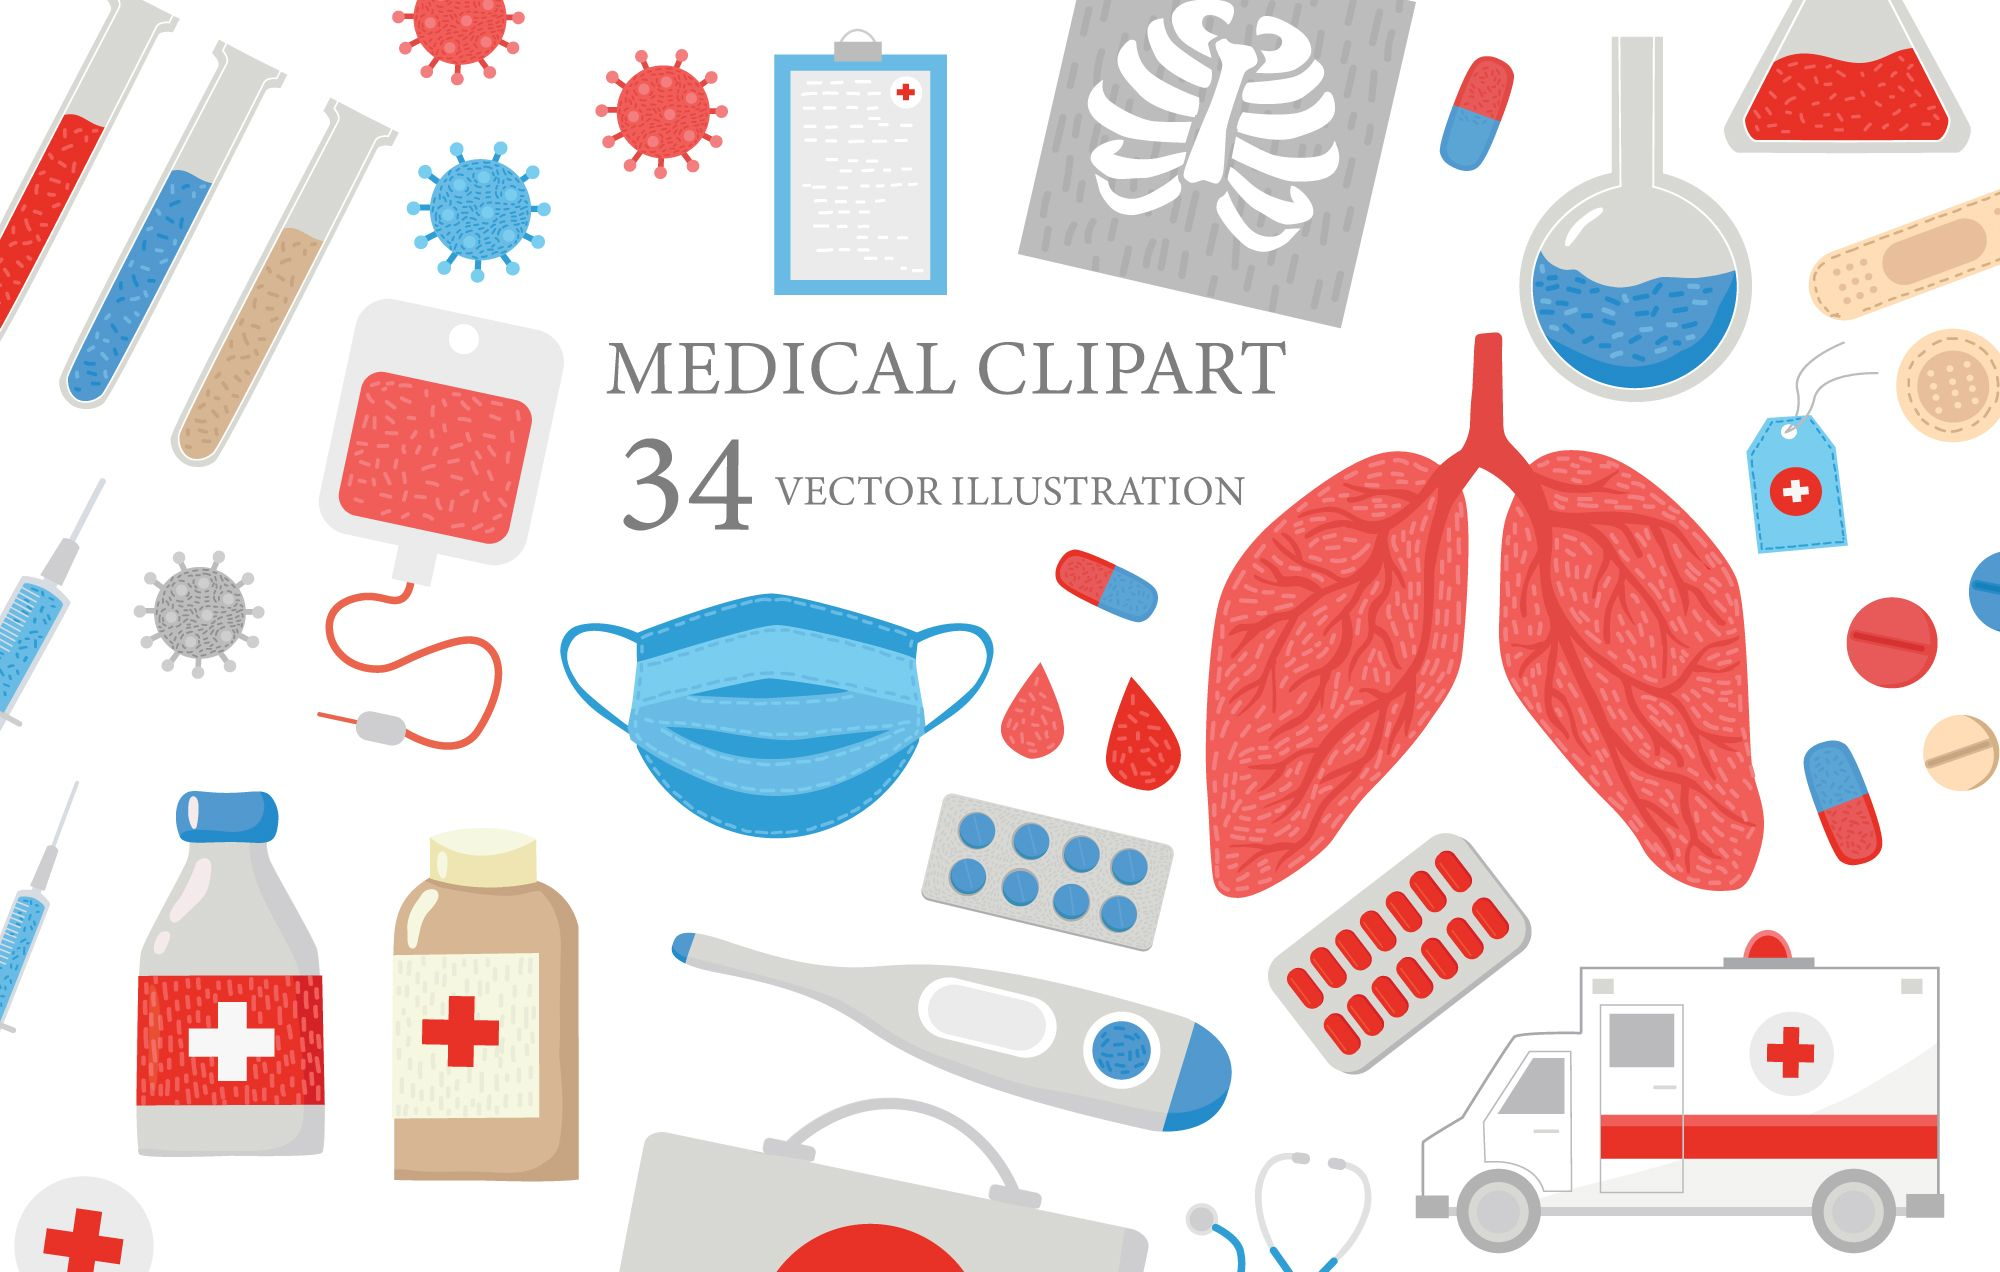 Health care illustration medical